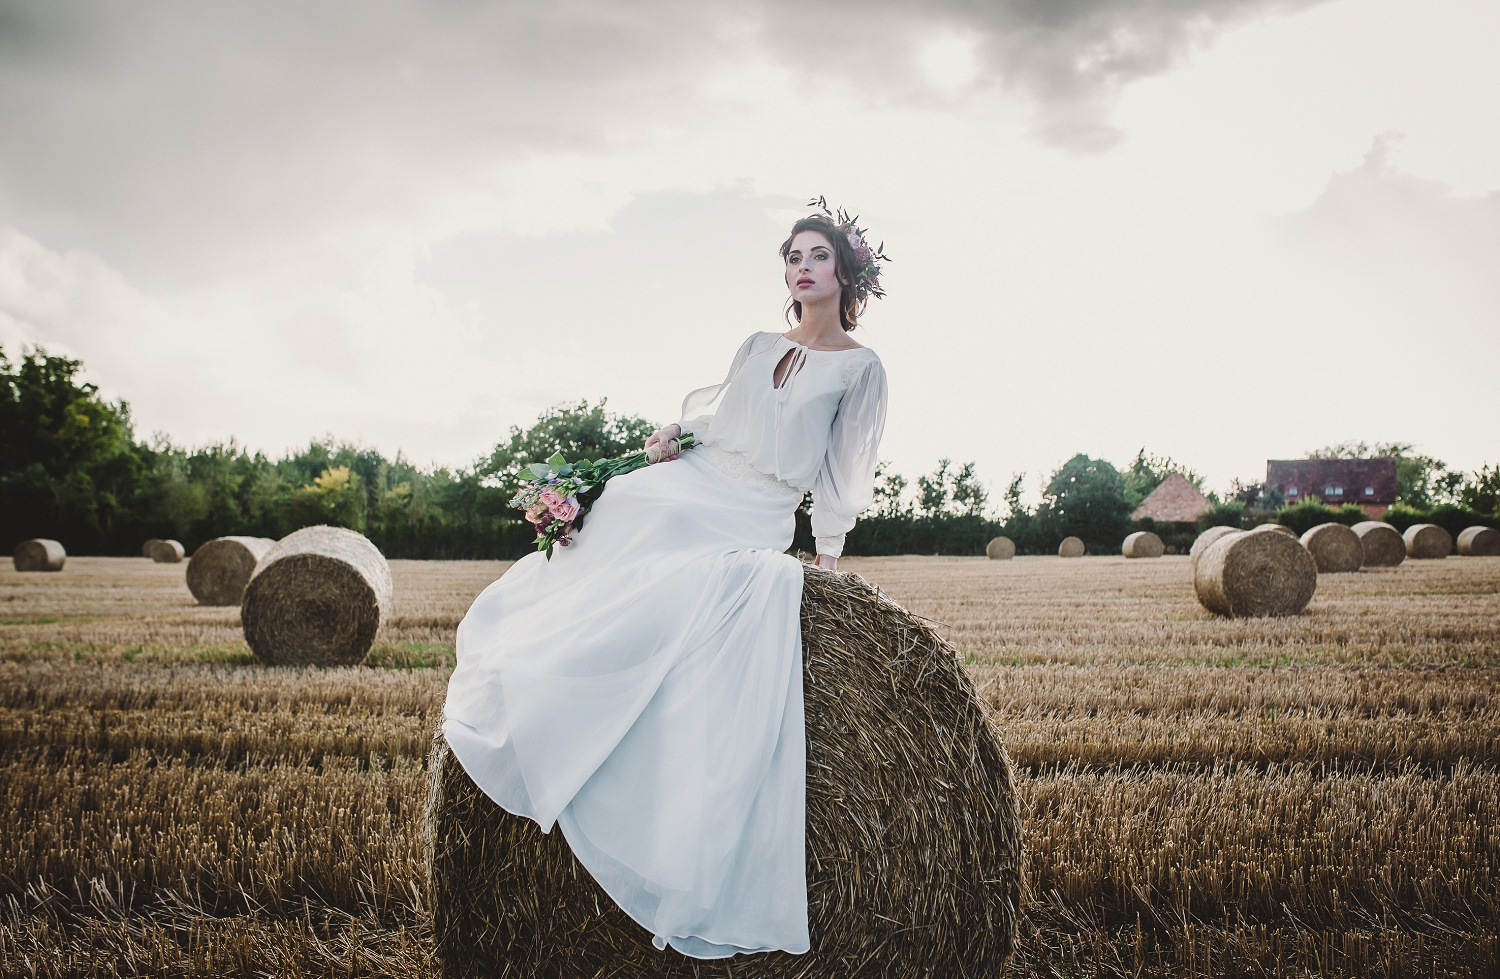 Curradine_bridal_Sept_17_amytiphoto_0082.jpg